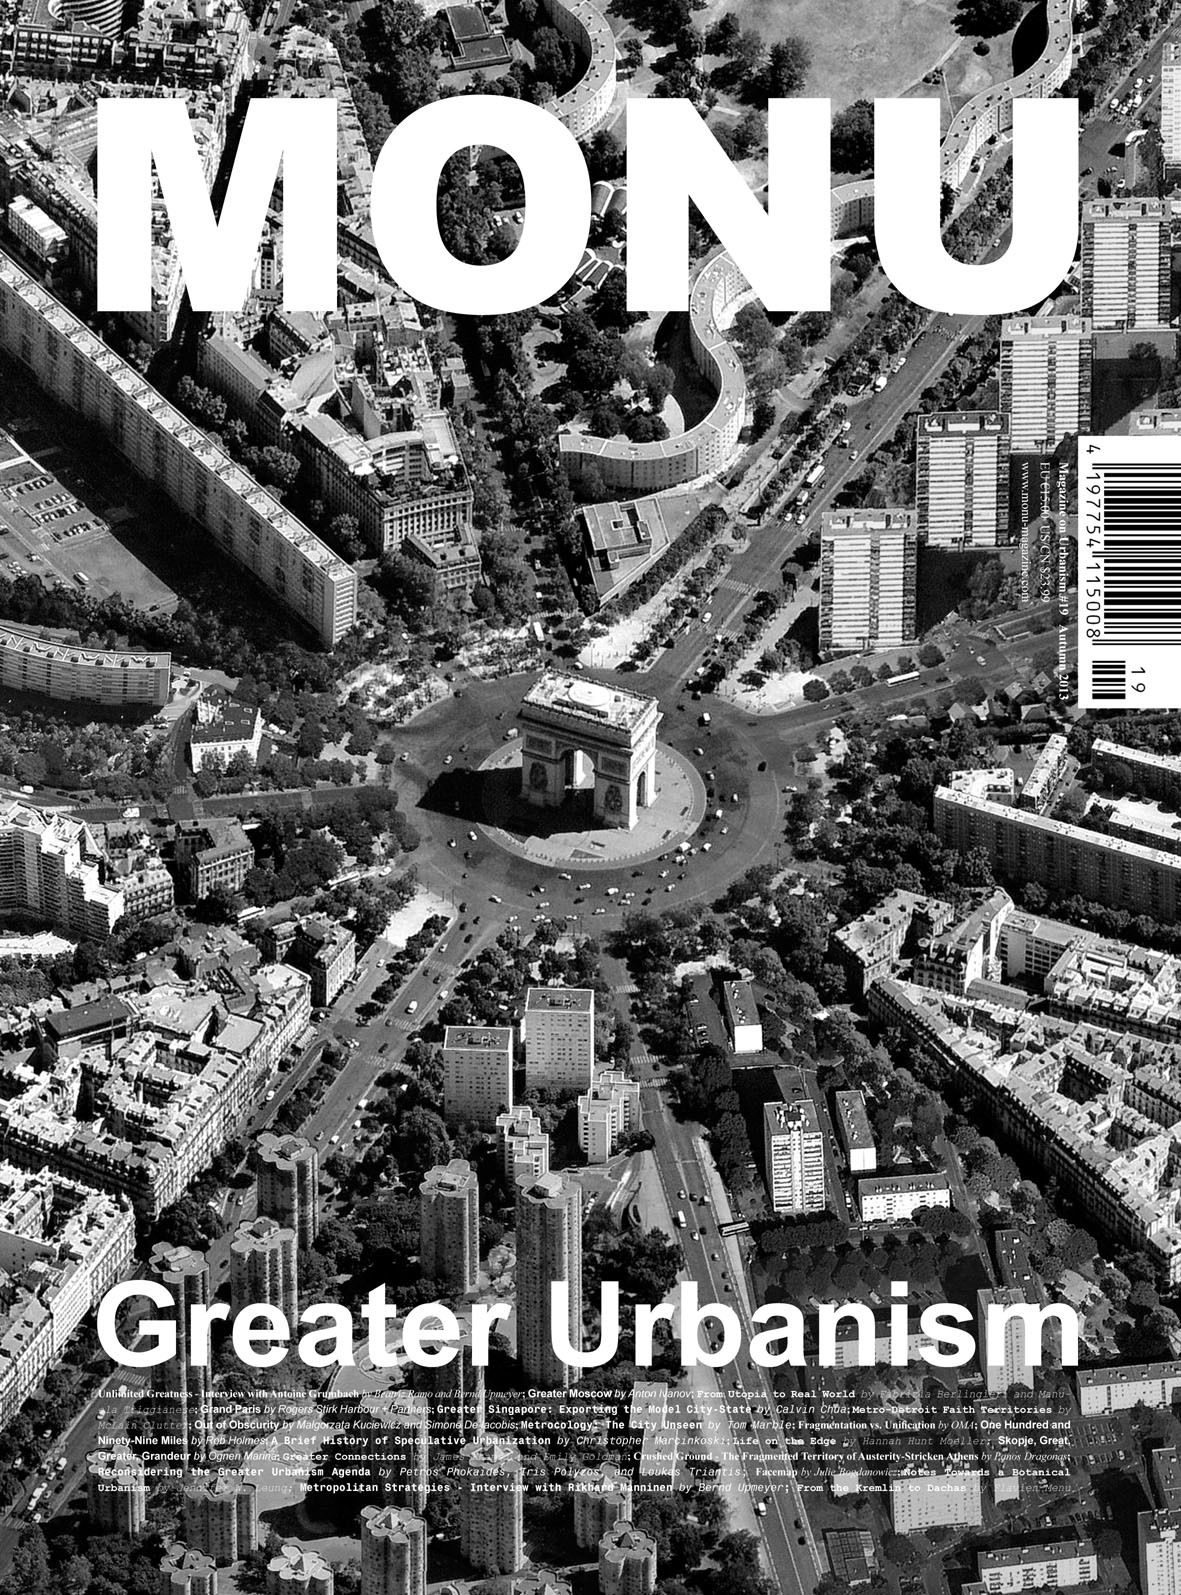 """Cover Image of MONU #19: 'The 'Étoile' of Grand Paris – The Radiant Typologies of Greater Paris' is courtesy of STAR strategies + architecture (http://st-ar.nl/) and BOARD (http://b-o-a-r-d.nl/). The image, featuring the Arc de Triomphe surrounded by the typologies of Grand Paris, is part of their research project """"Construisons le Grand Paris Ensemble - Or the Story of How Paris Became Greater"""". This story is the first legend of the Parisian territory, in which Paris had to die..."""